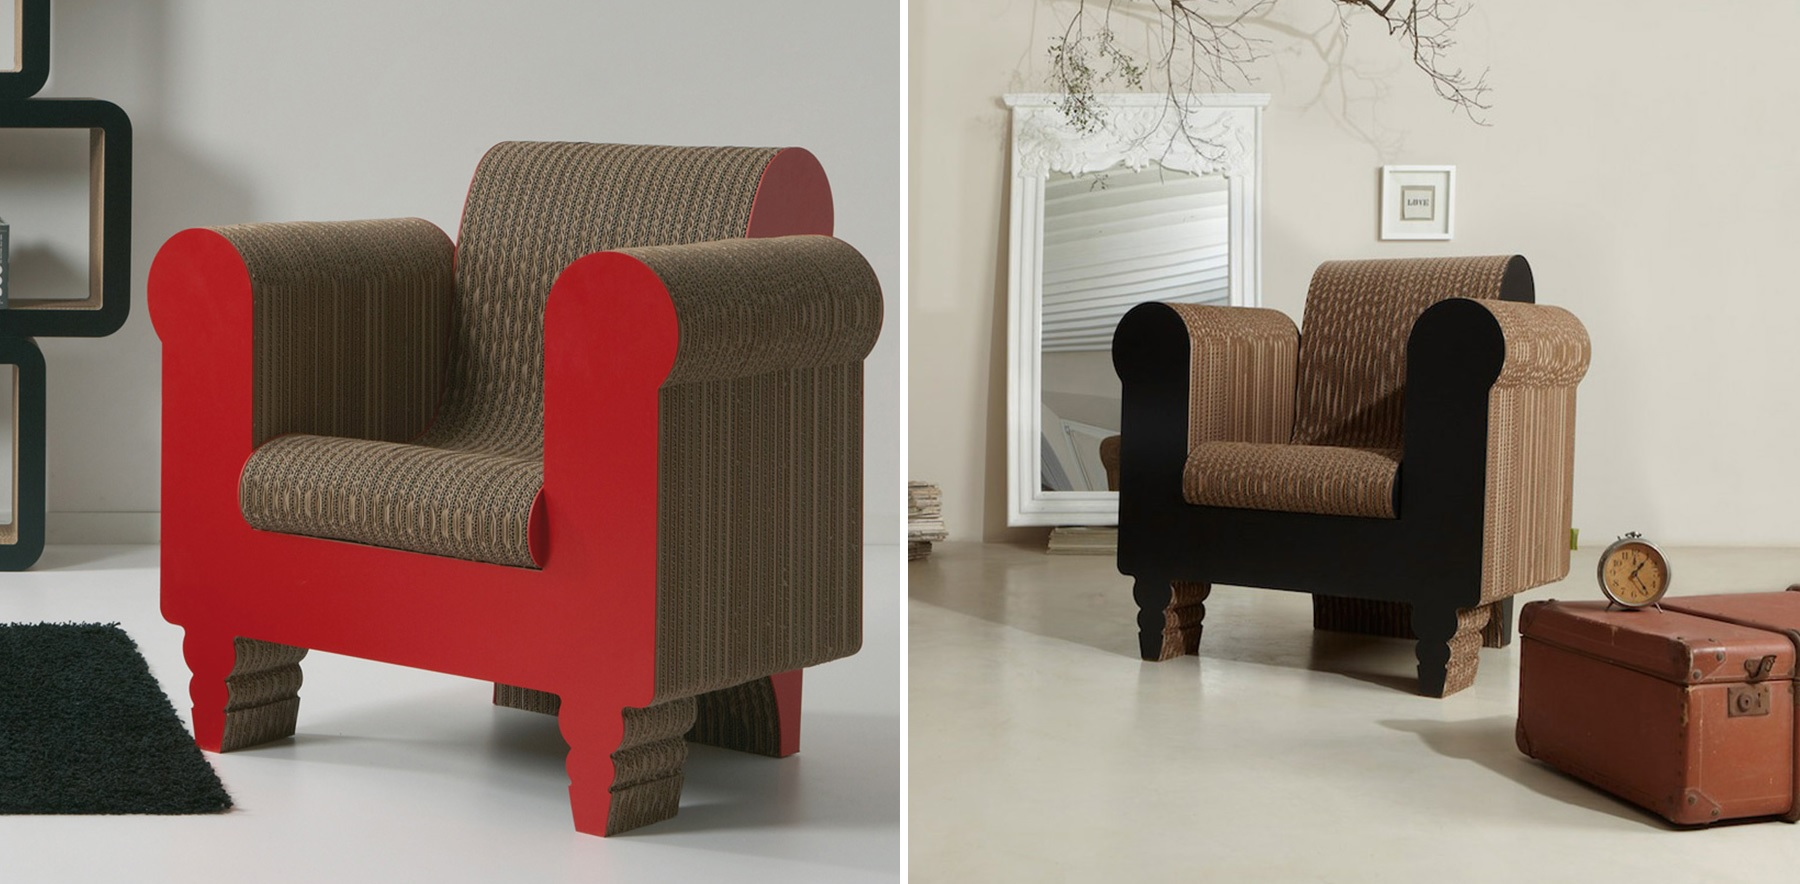 chair design.com santa covers amazon cardboard furniture surprisingly strong and unexpectedly